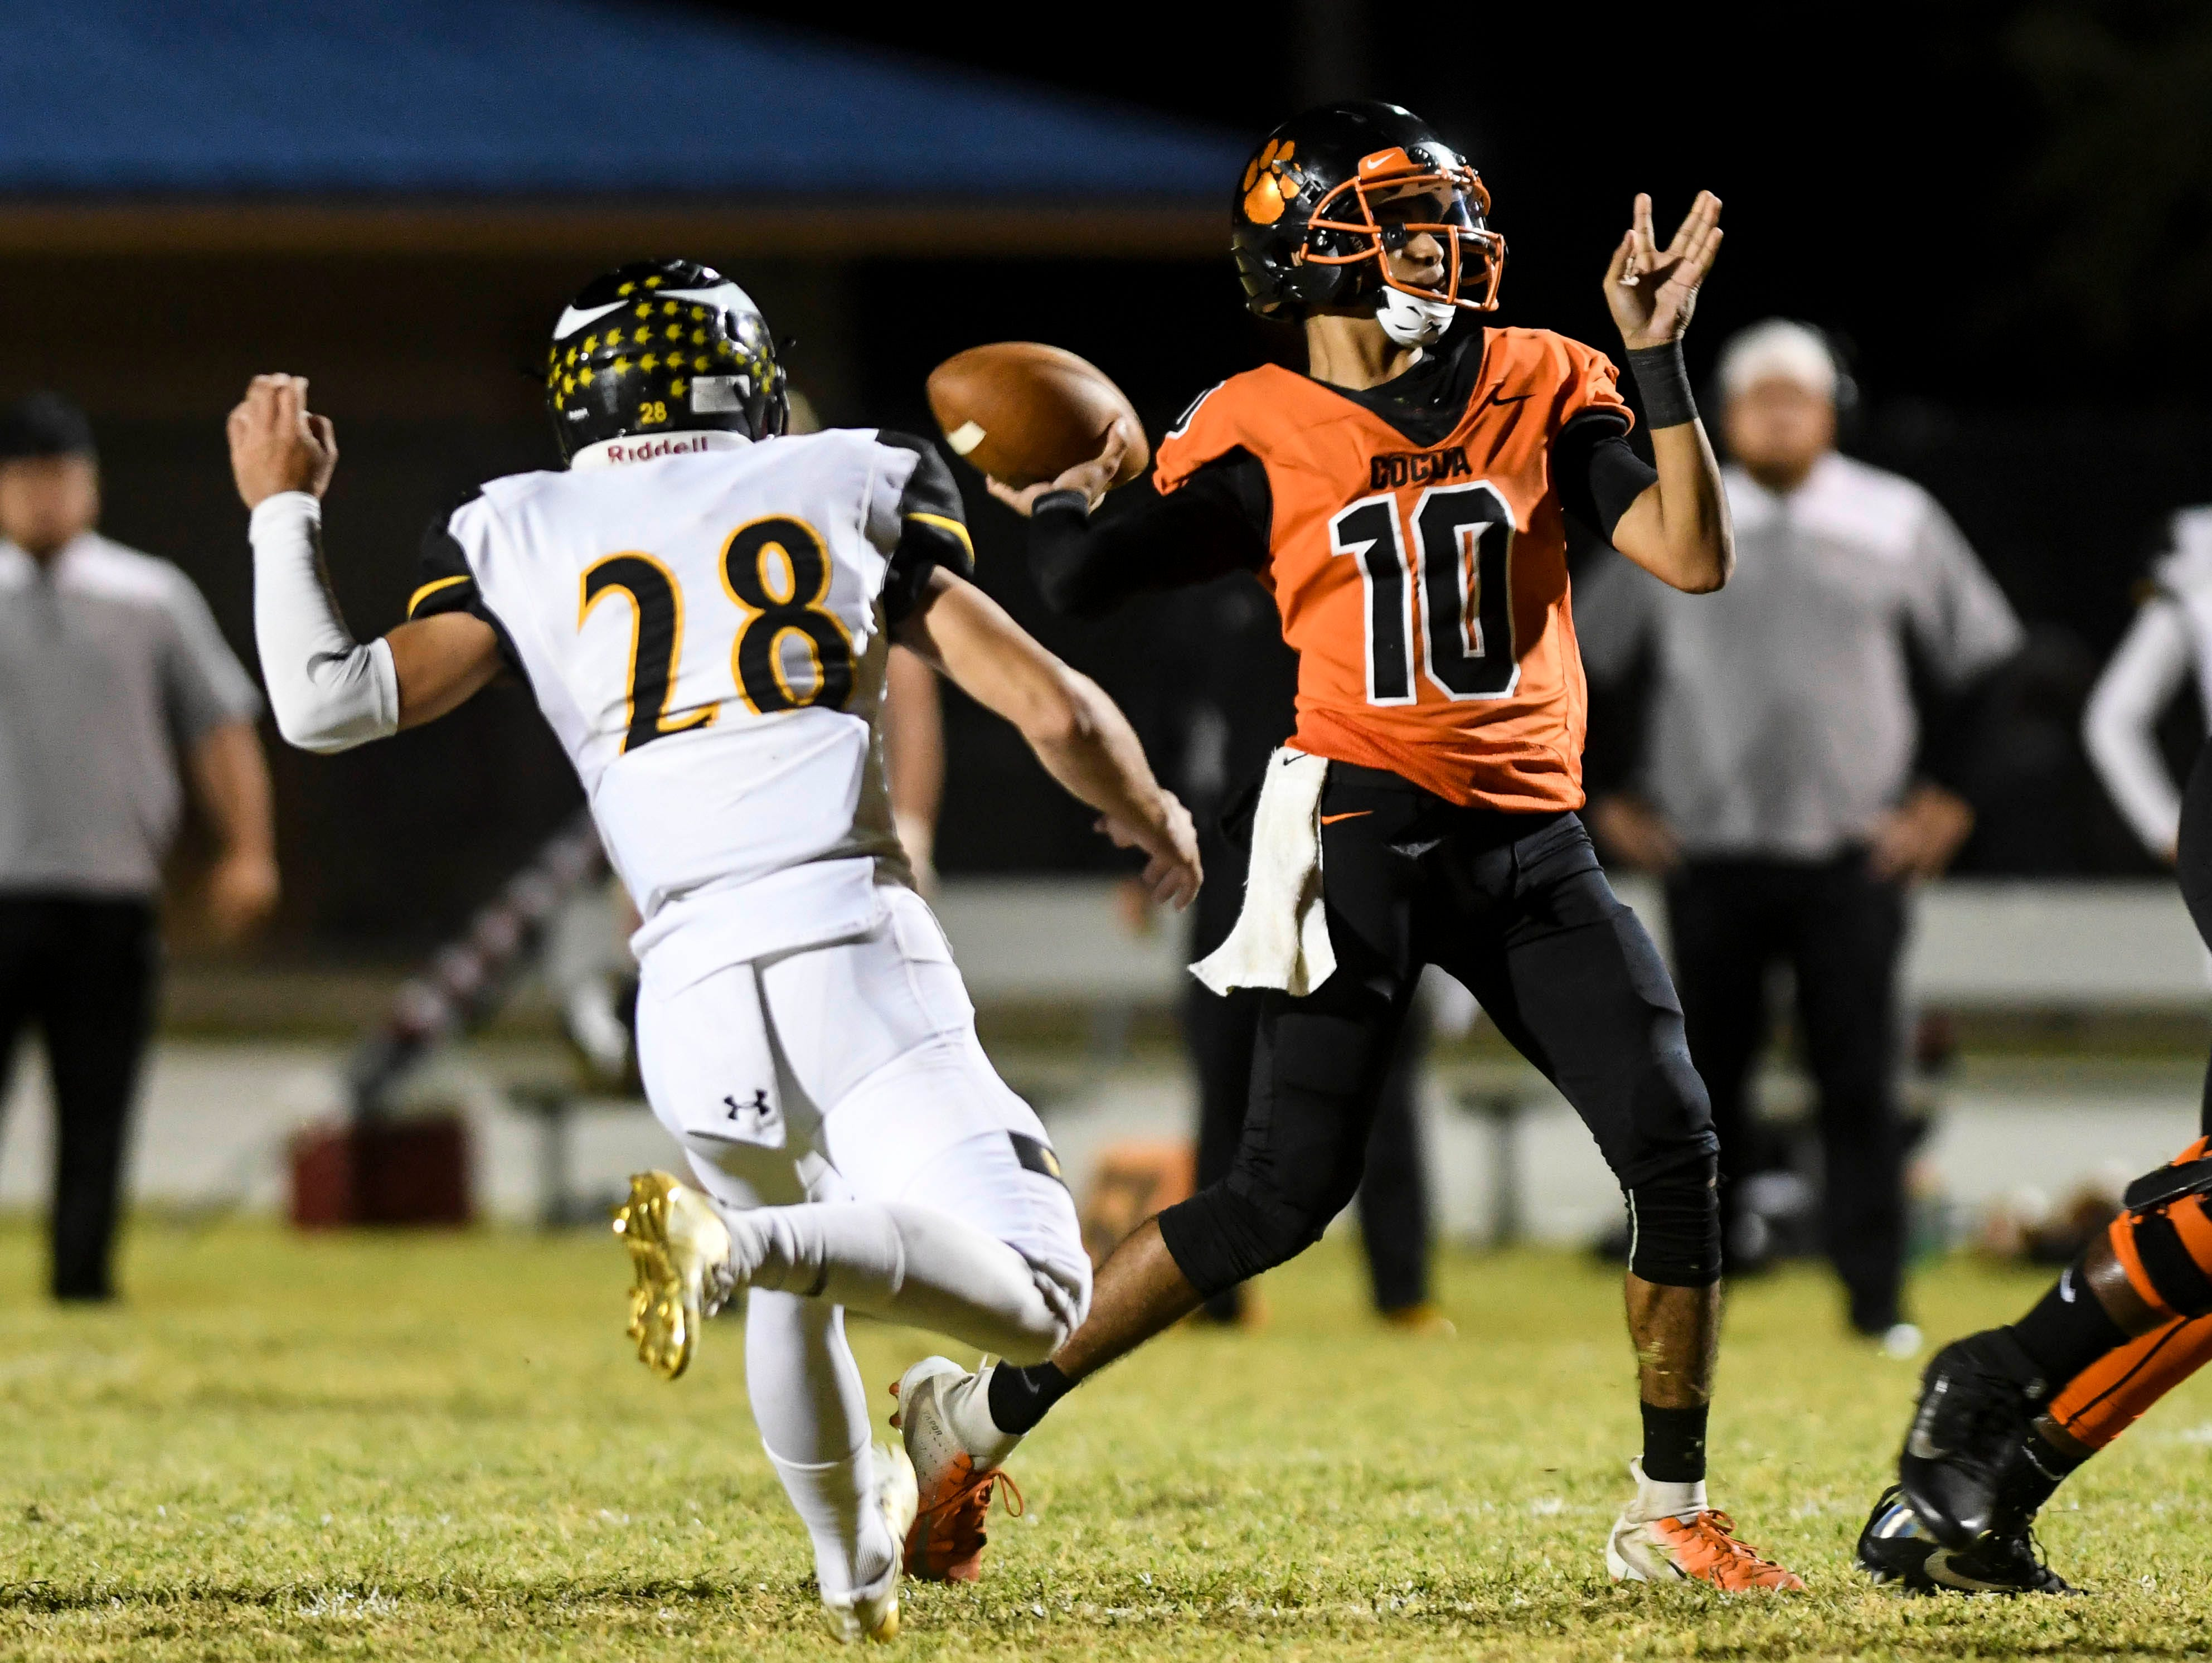 Cocoa QB Diego Arroyo passes the ball during Friday's game against Bishop Verot at Blake Stadium.